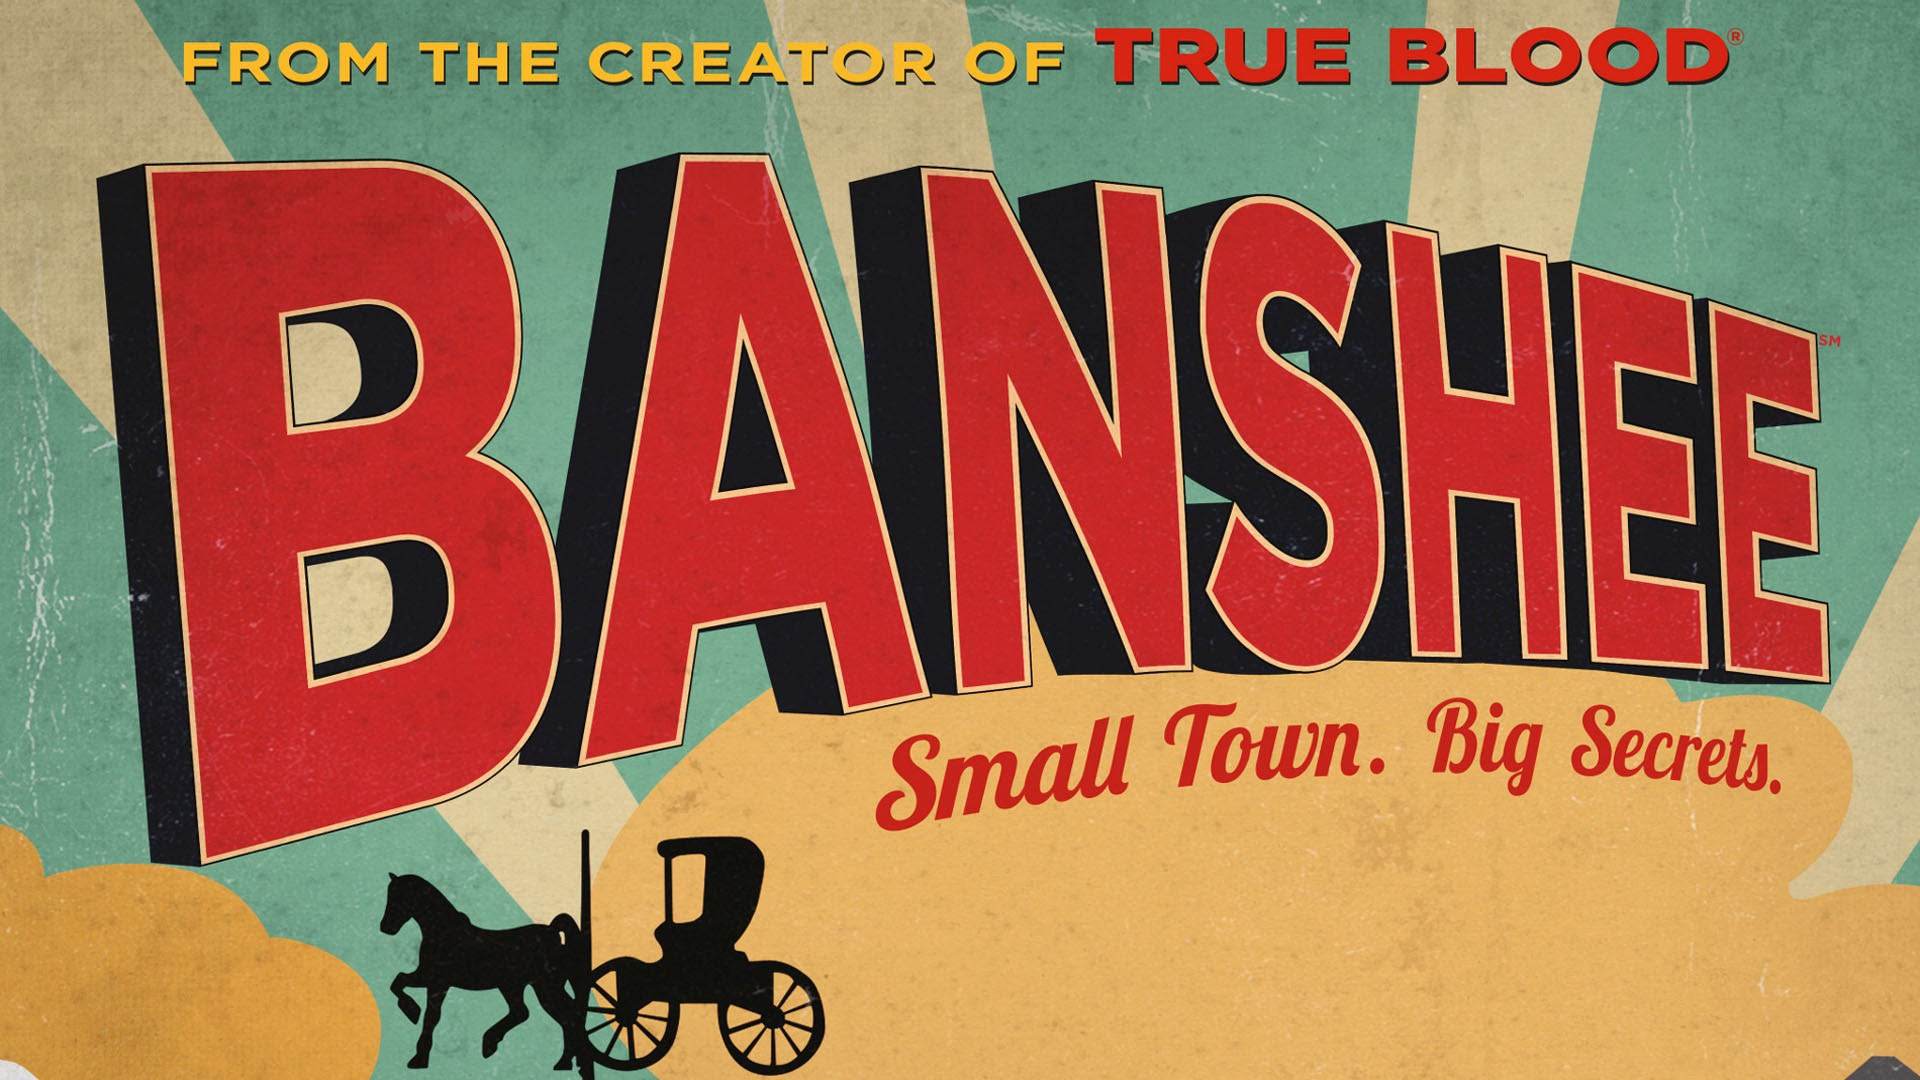 banshee-1080p-high-quality-wallpaper-wpc9201497